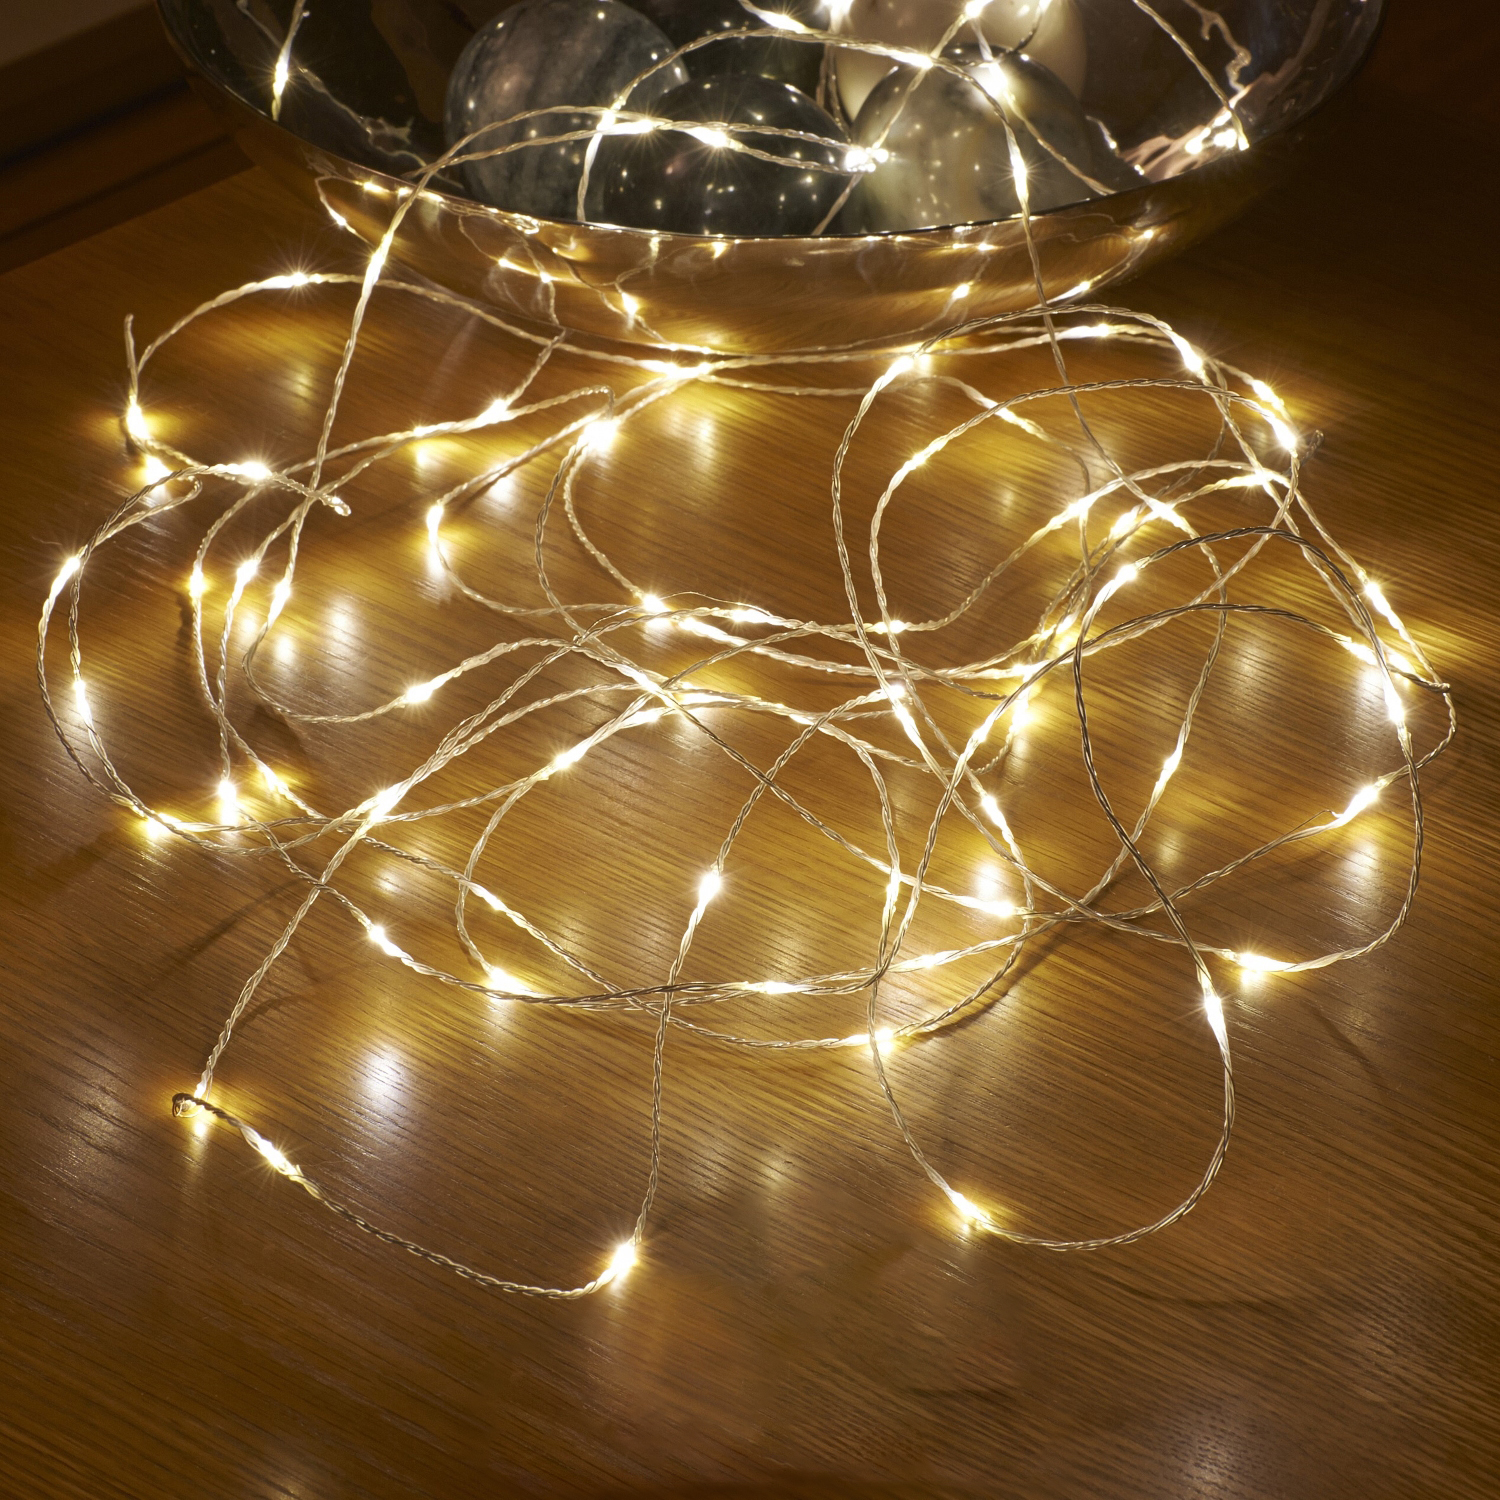 String Lights Backyard Led : Micro LED String Lights - Battery Operated - Remote Controlled - Outdoor - 5M - Auraglow LED ...